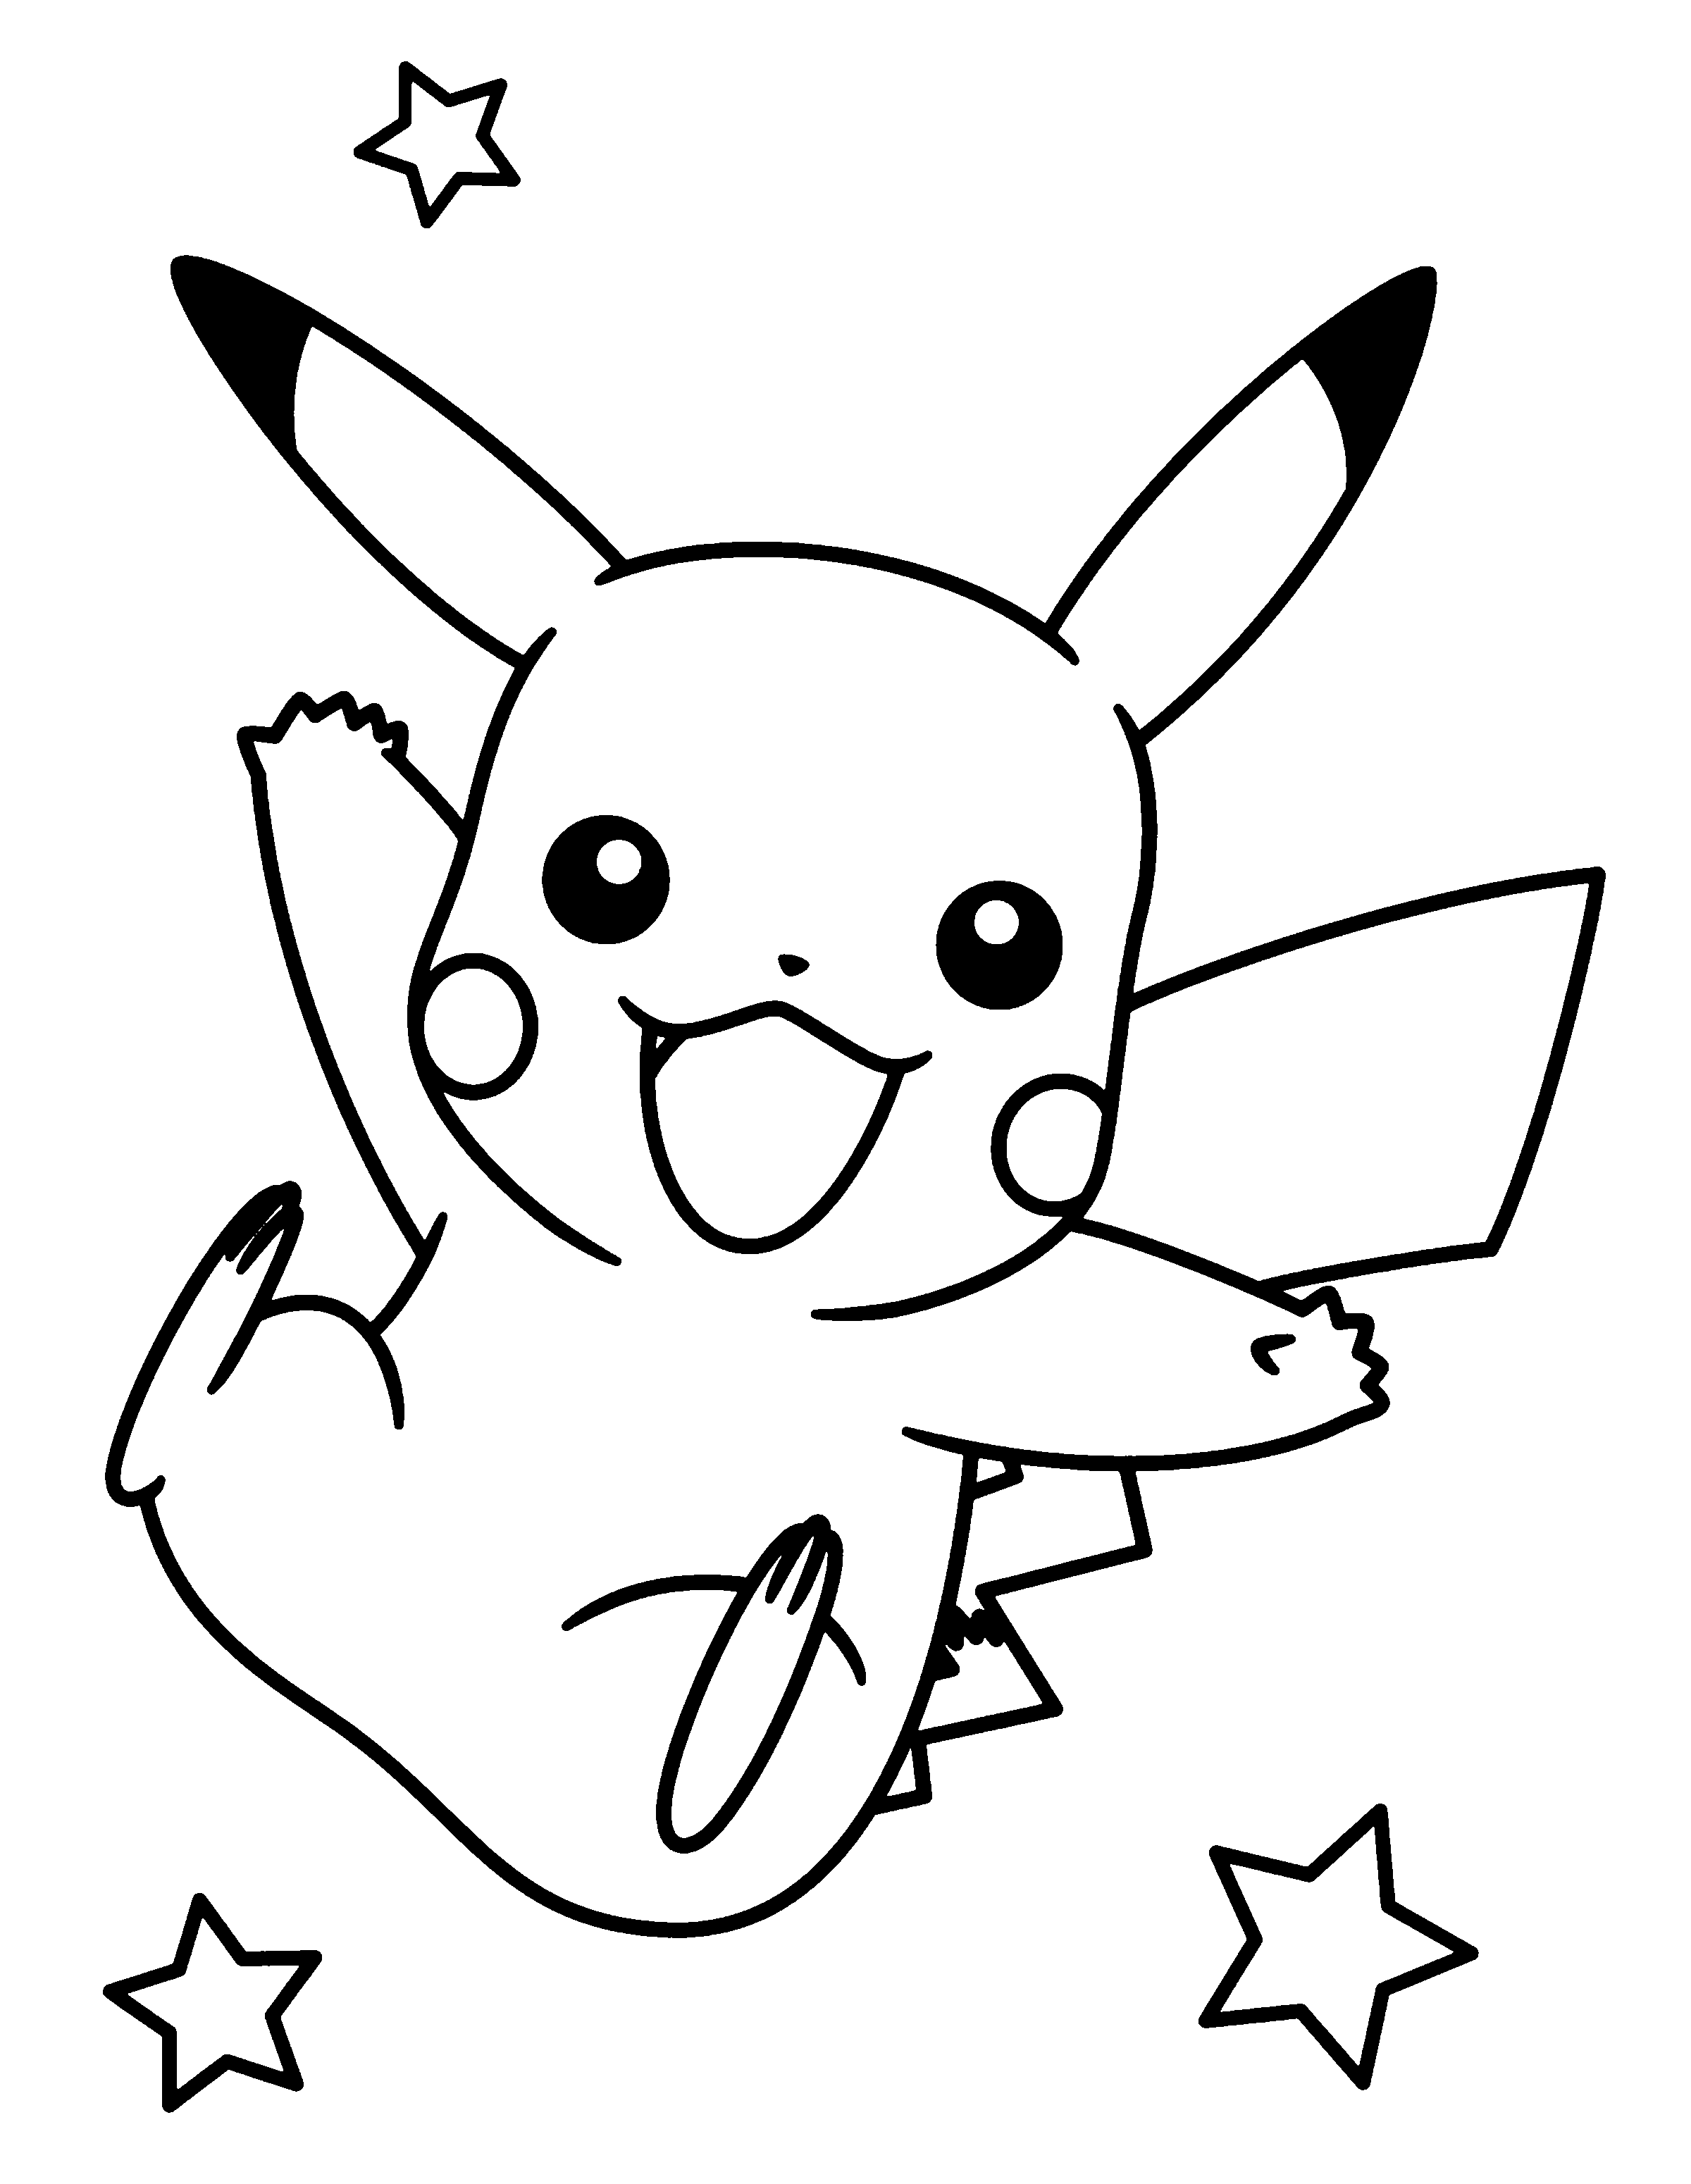 outline of pikachu pikachu clipart free download on webstockreview of pikachu outline